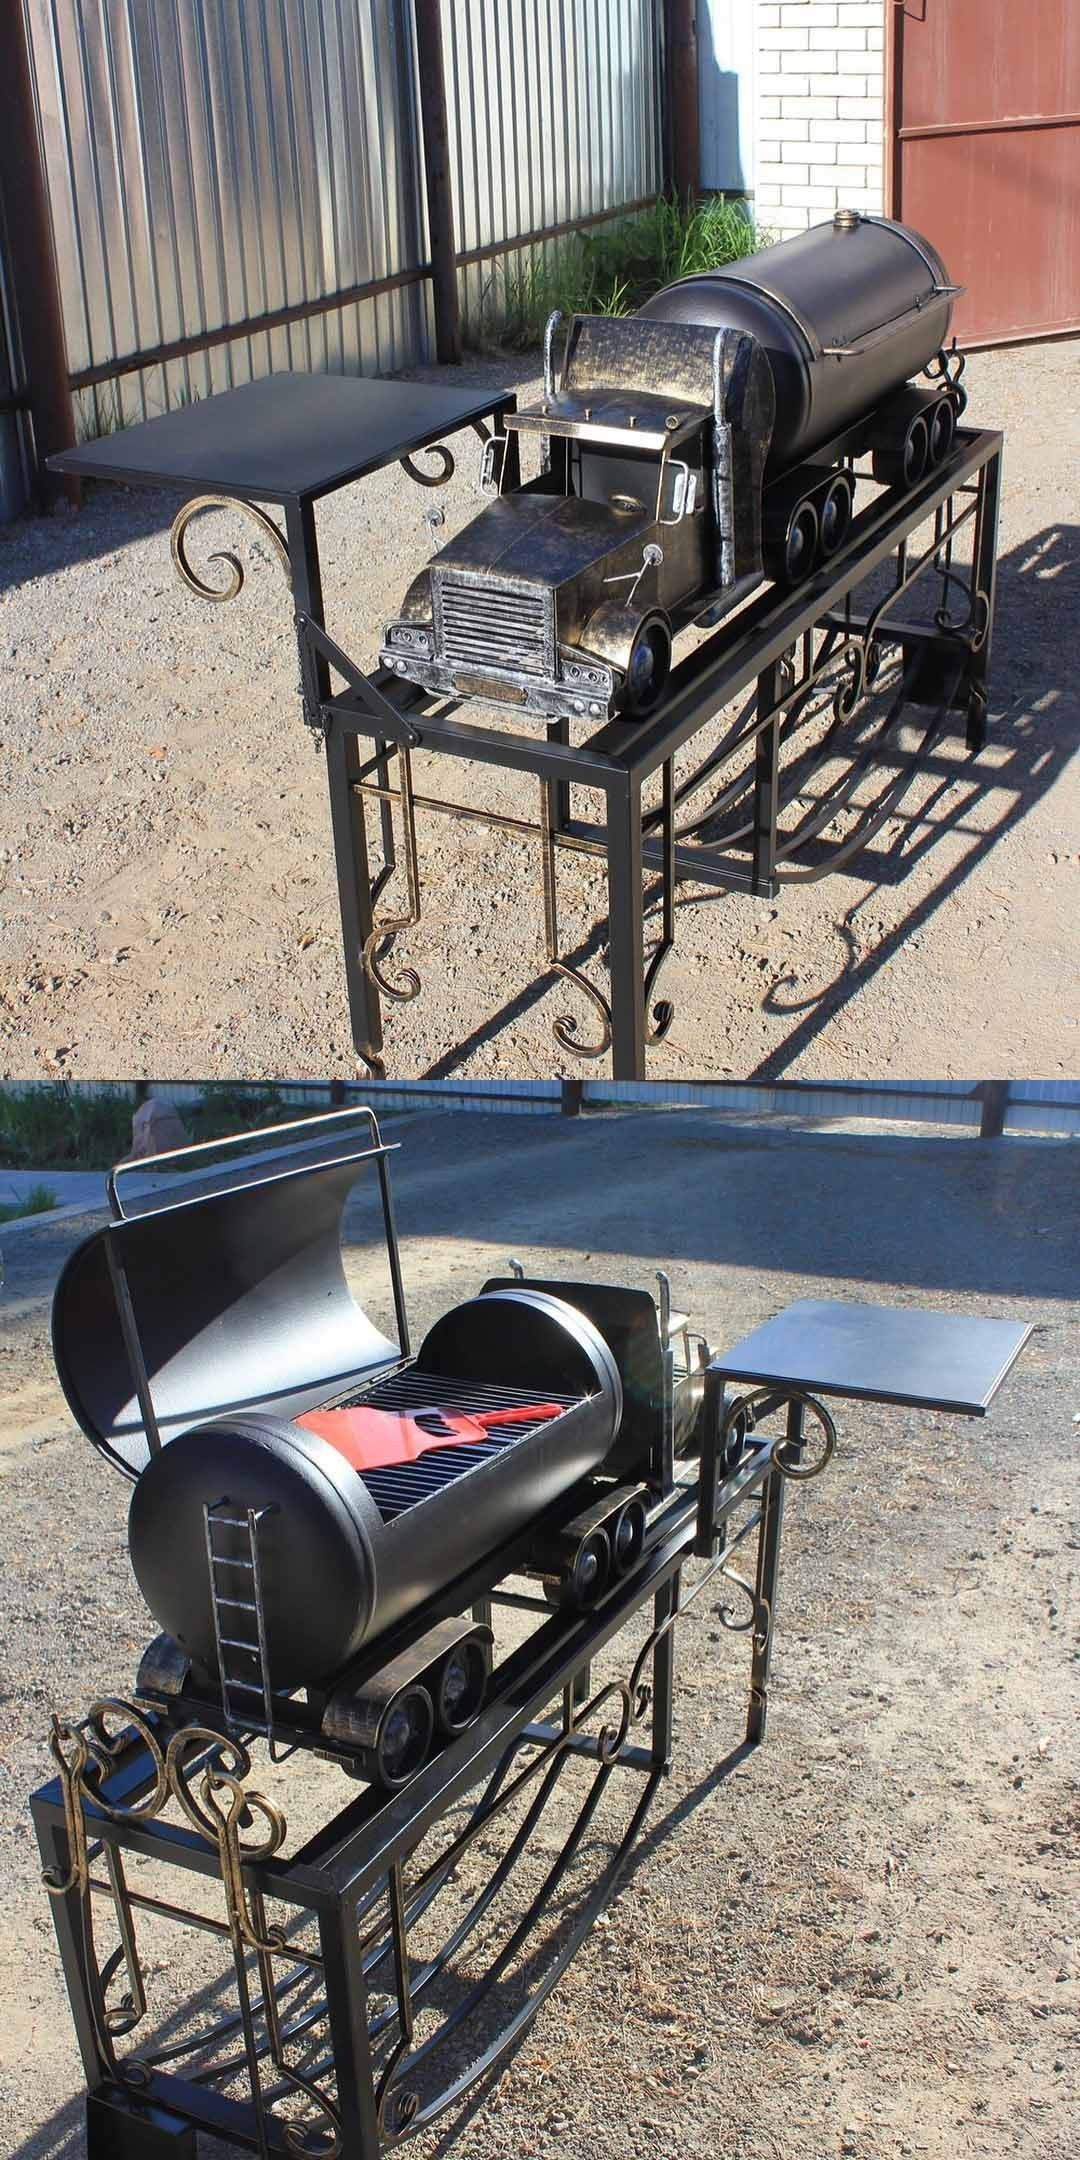 Pin By Pieter Luyten On Barbecue Grill Metal Grill Fire Pit Bbq Custom Bbq Grills